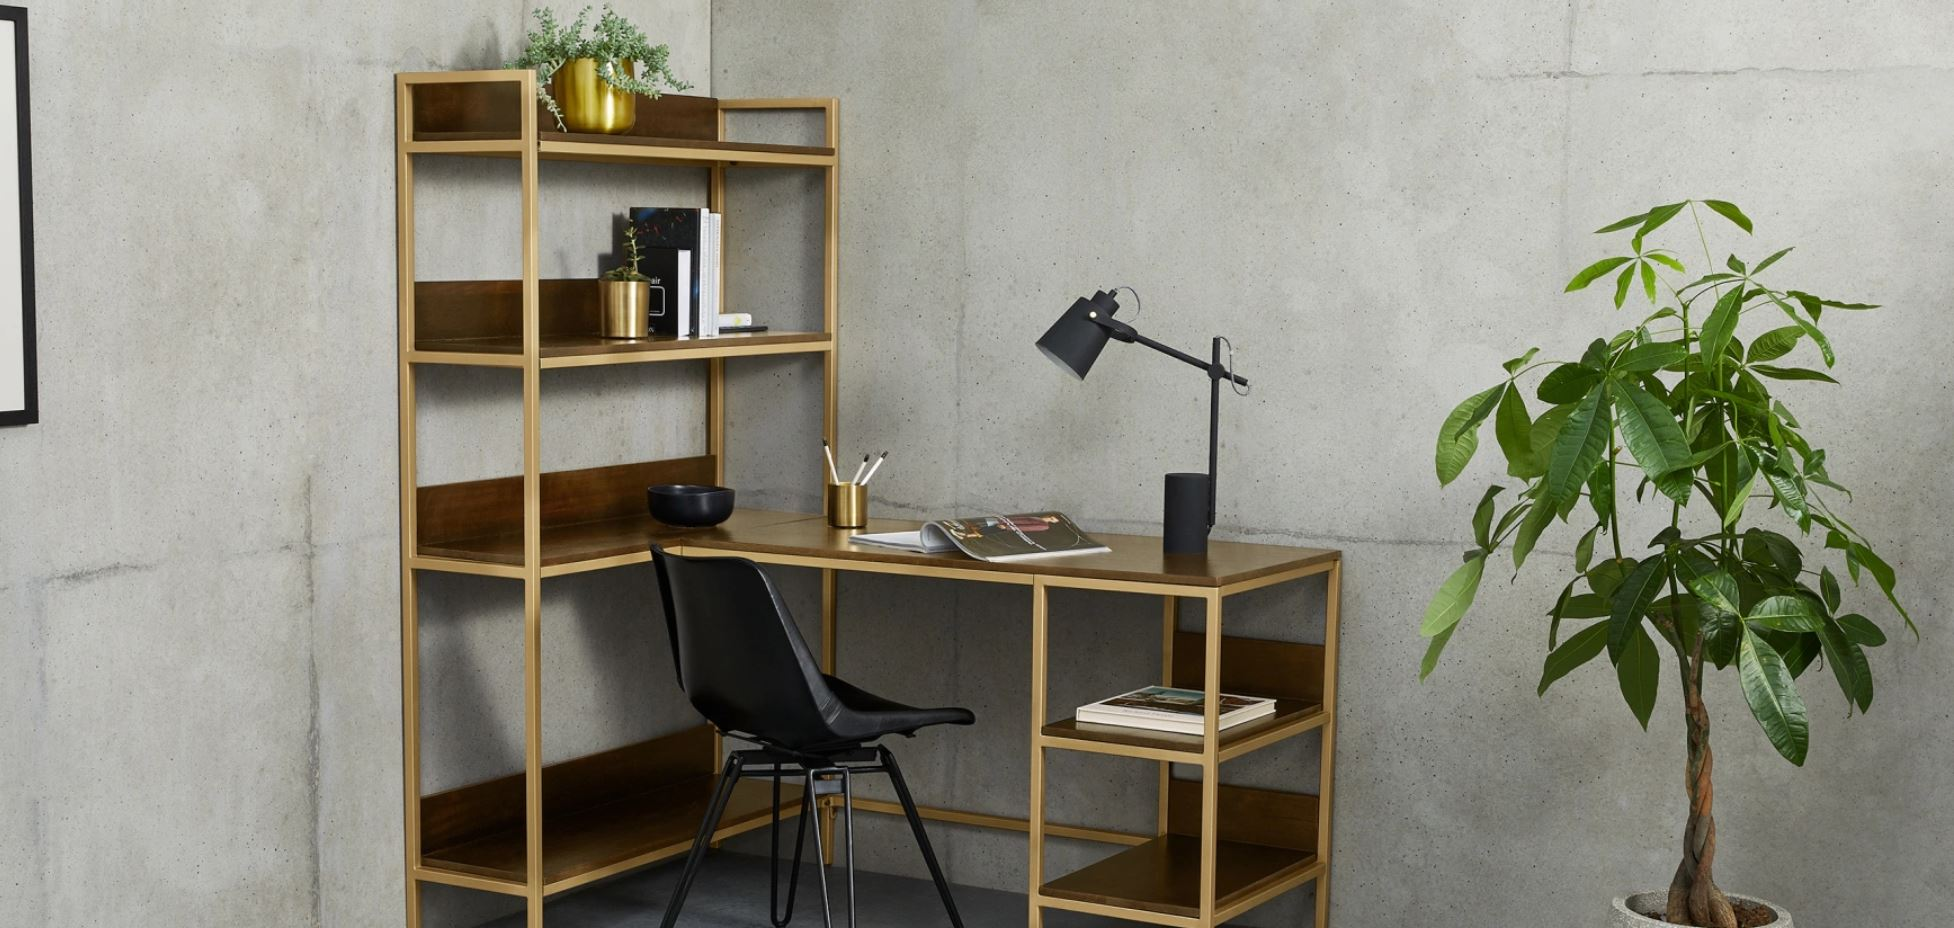 5 office space ideas for small homes